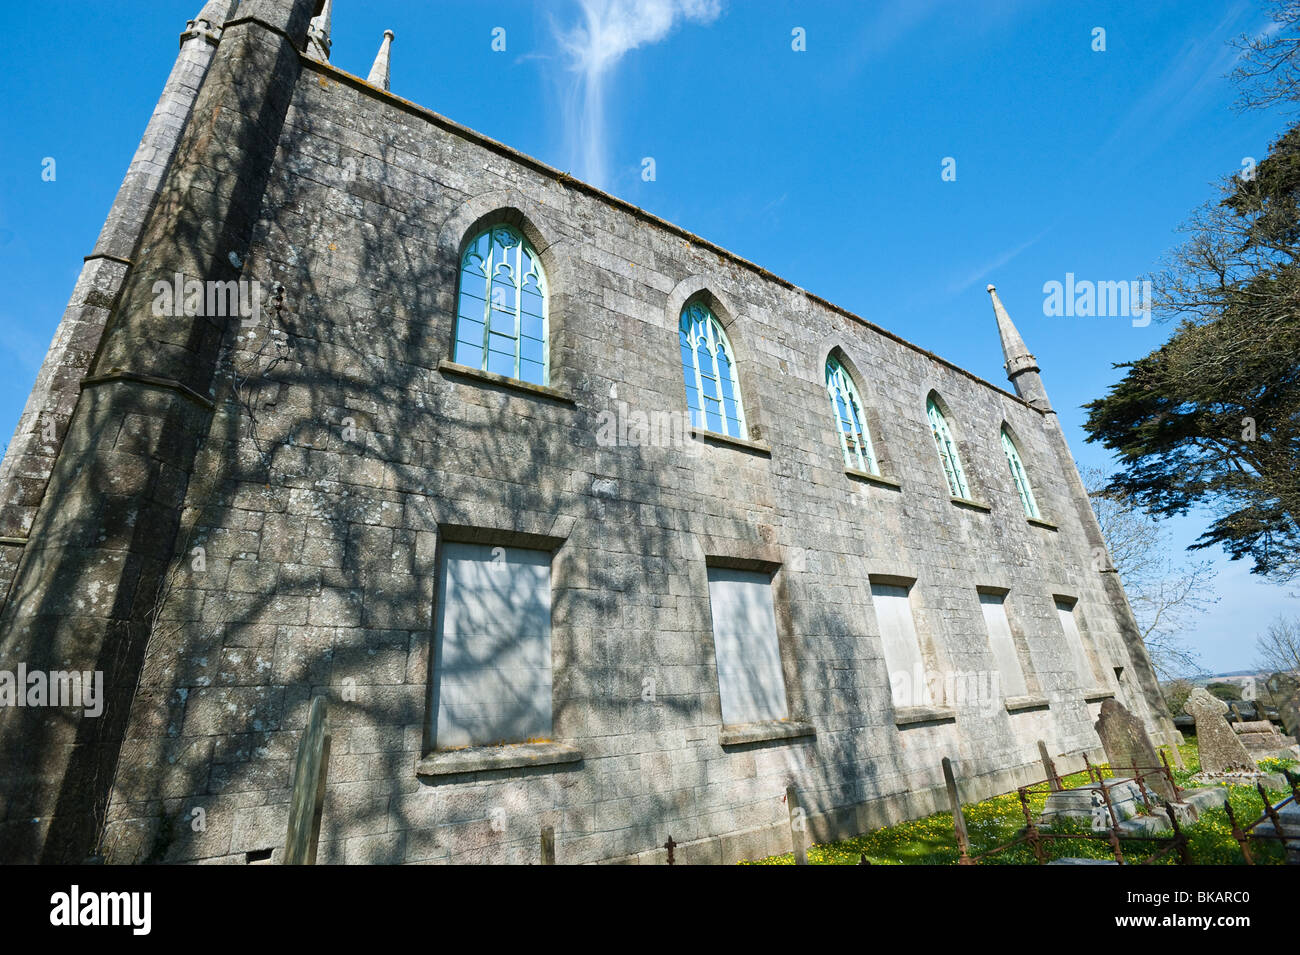 St Day Old Church, St Day Cornwall - Stock Image